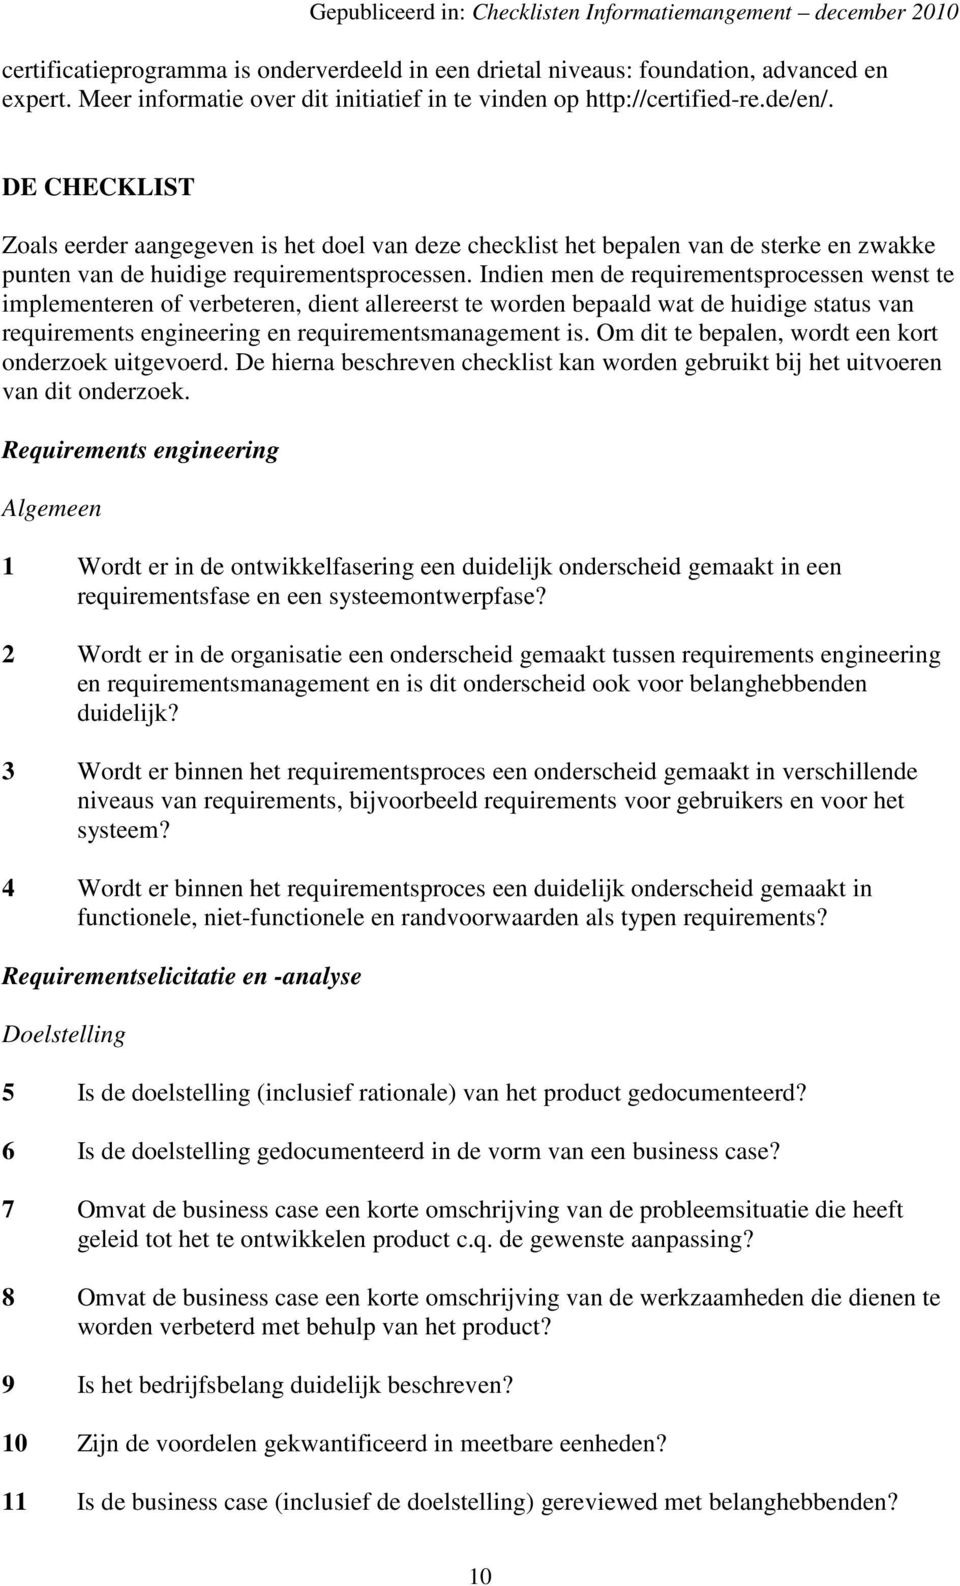 Indien men de requirementsprocessen wenst te implementeren of verbeteren, dient allereerst te worden bepaald wat de huidige status van requirements engineering en requirementsmanagement is.